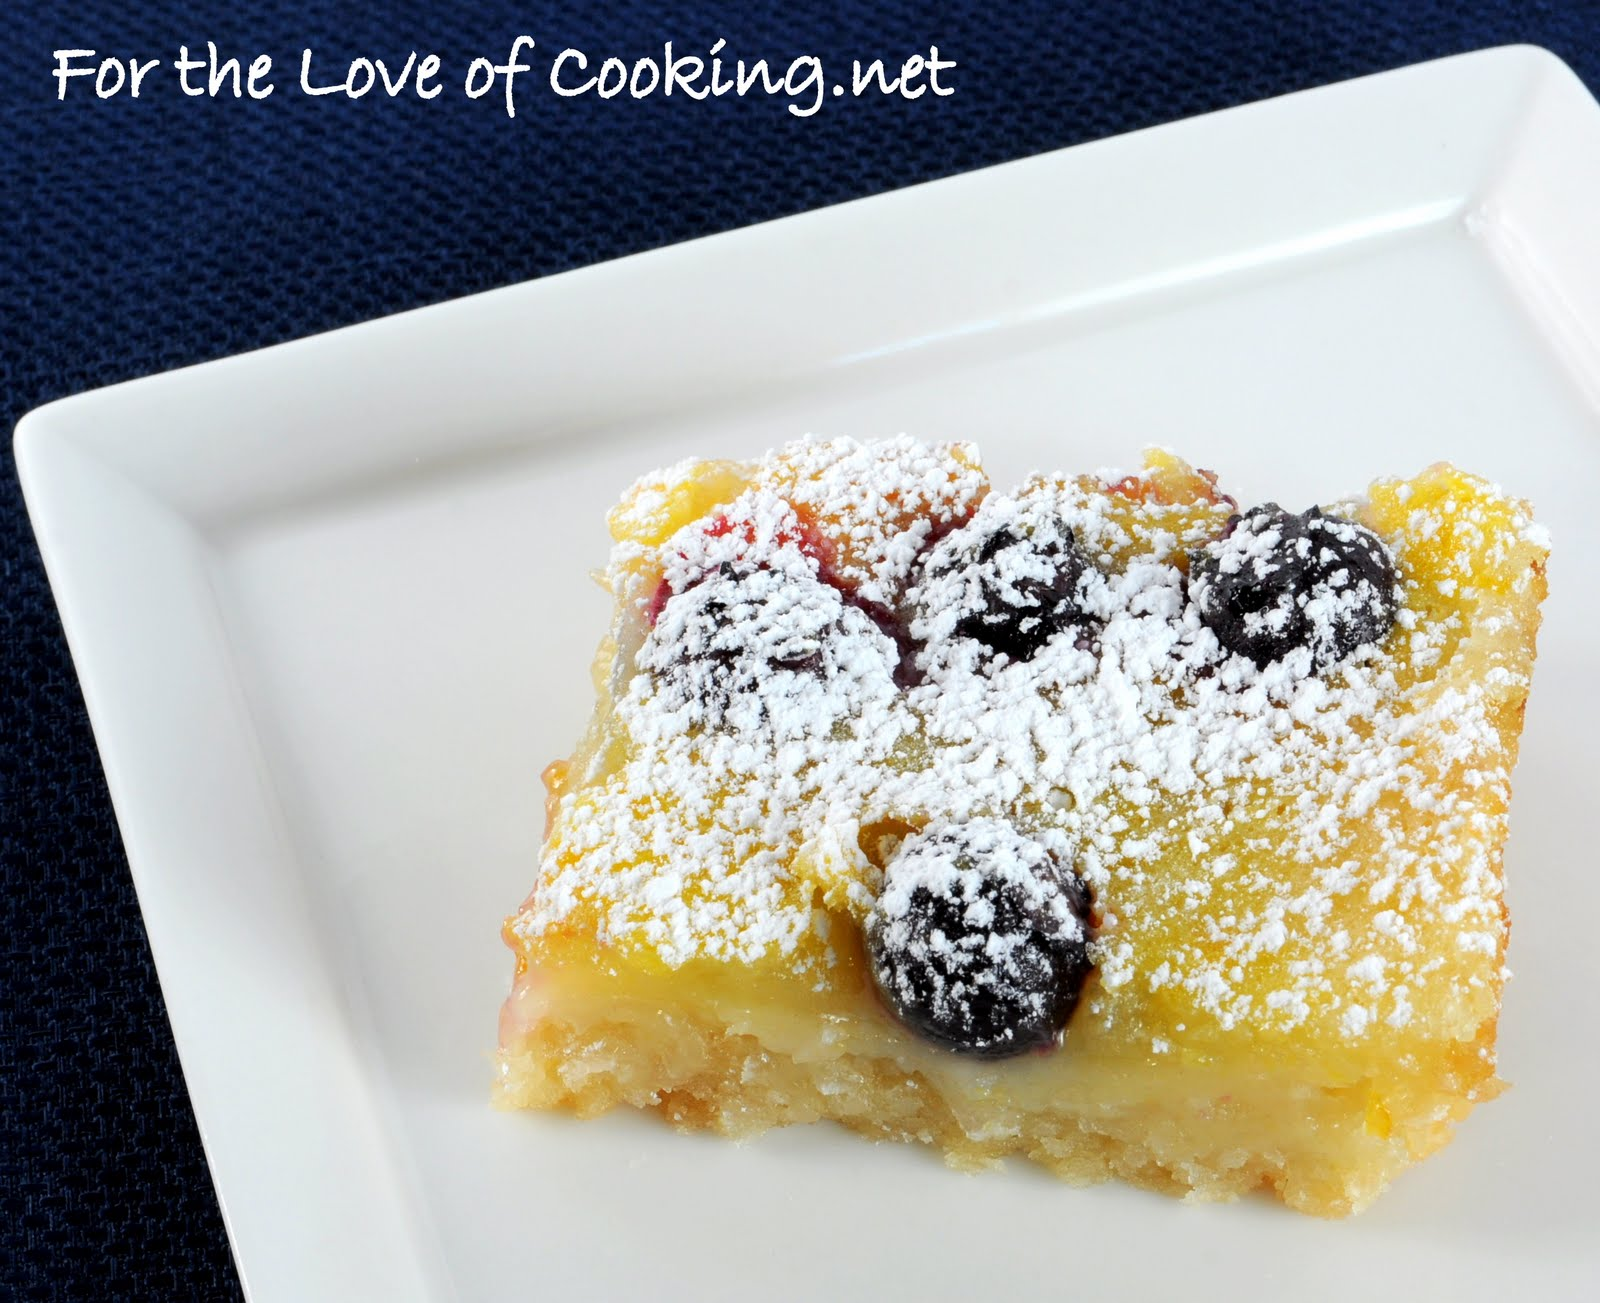 For the Love of Cooking: Lemon and Blueberry Bars with a Coconut Crust